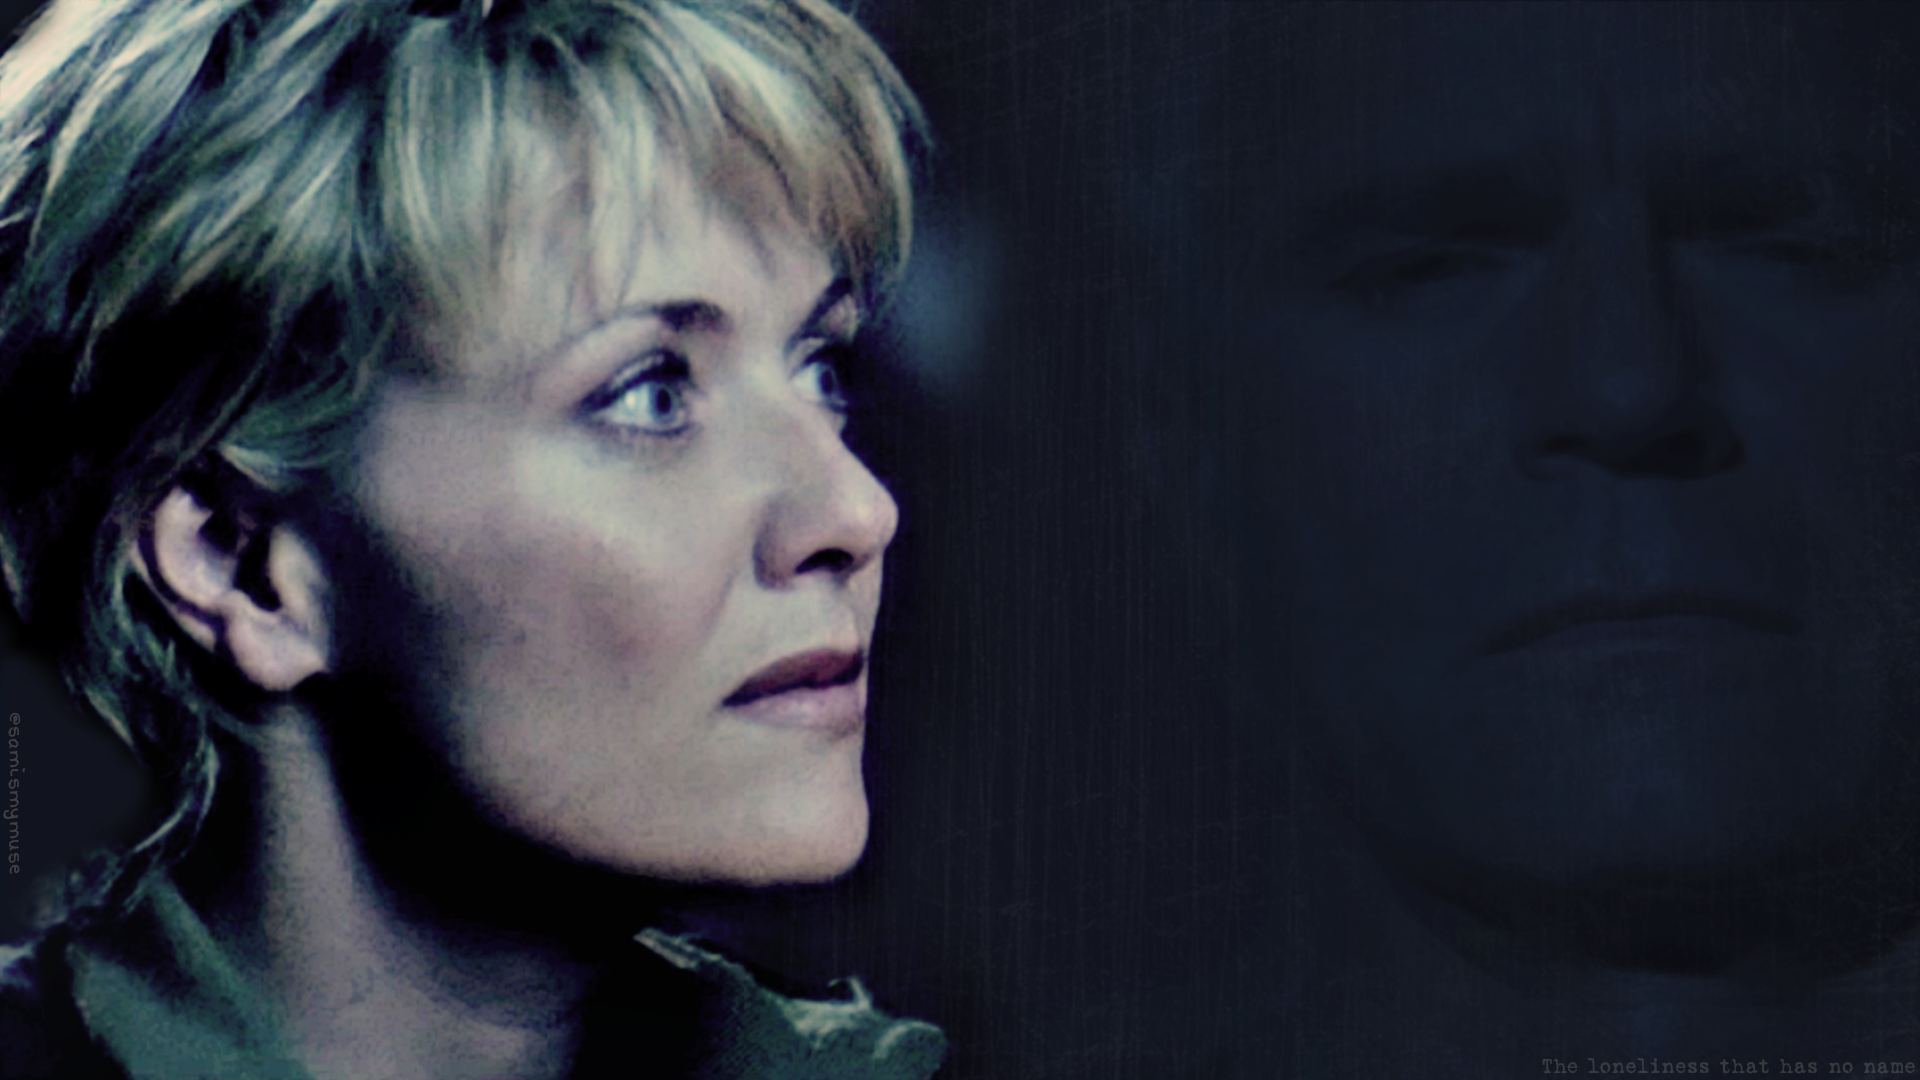 Samantha Carter - Wikipedia